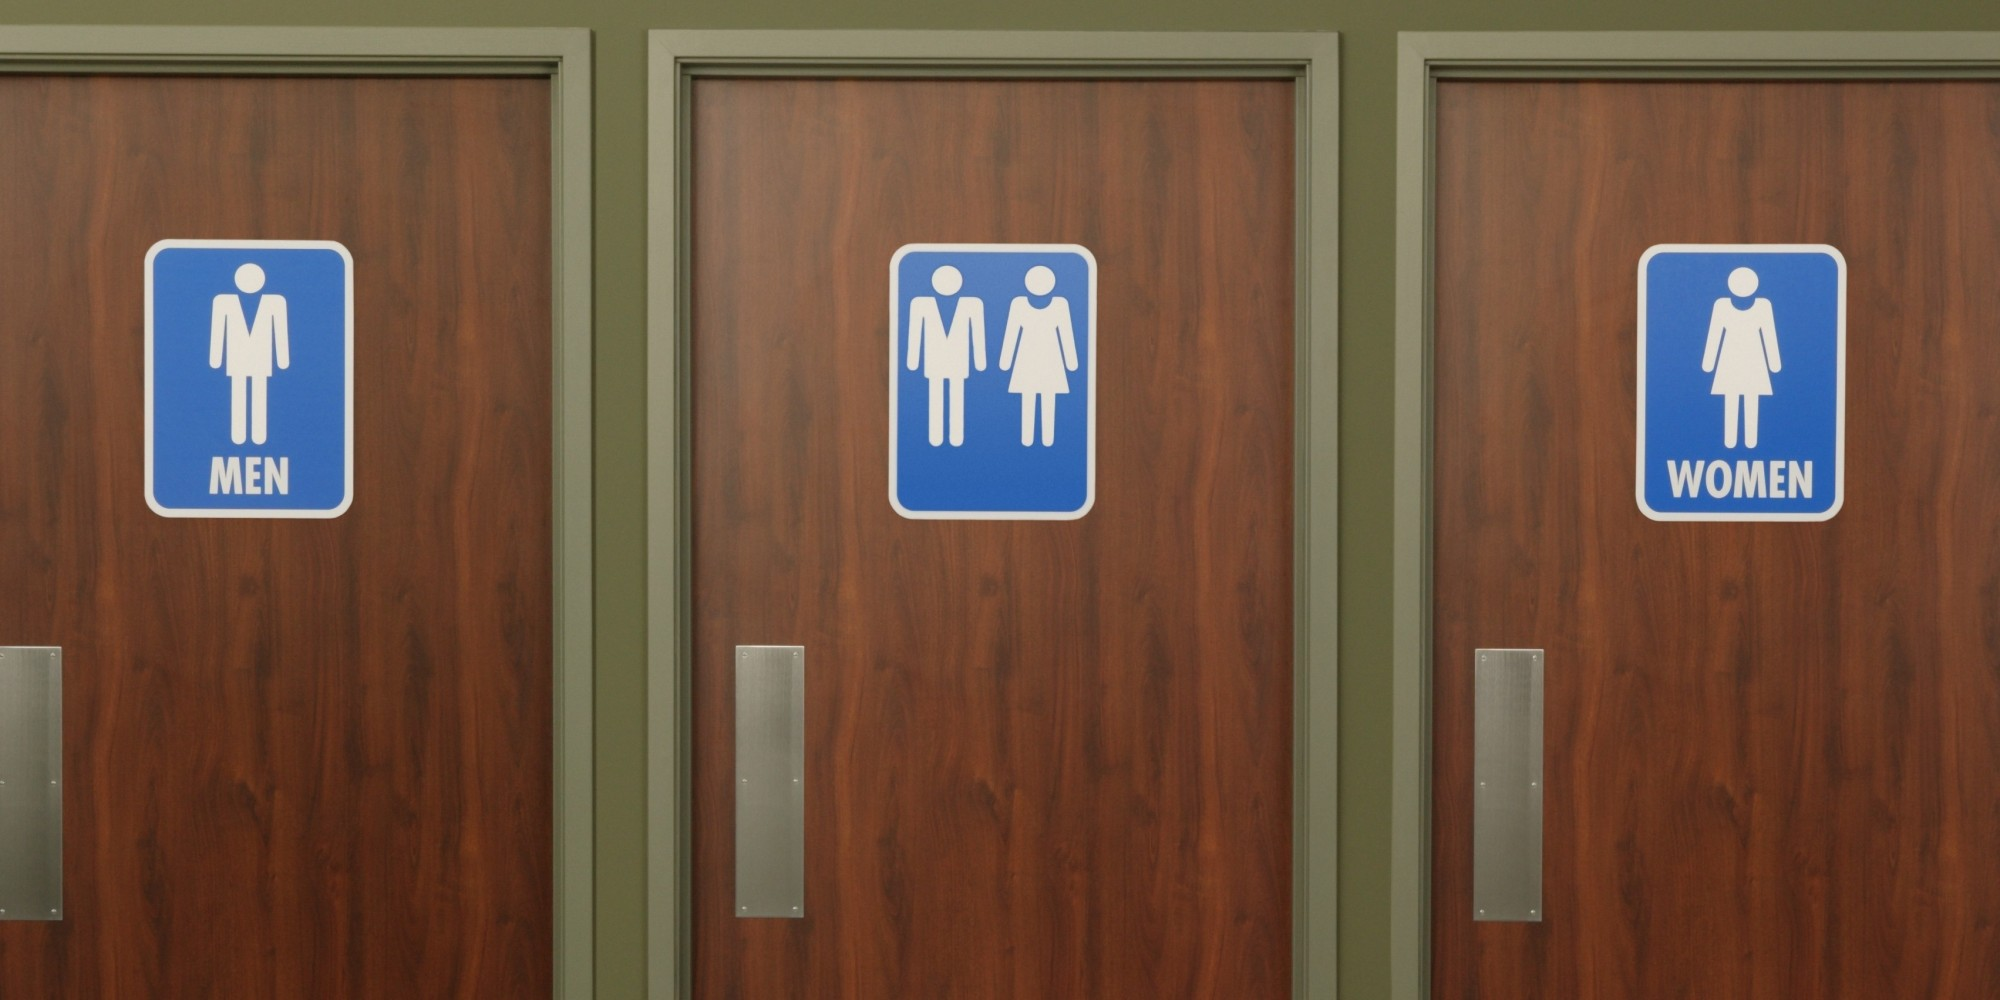 Refuge Restrooms Helps Users Locate Gender Neutral Bathrooms